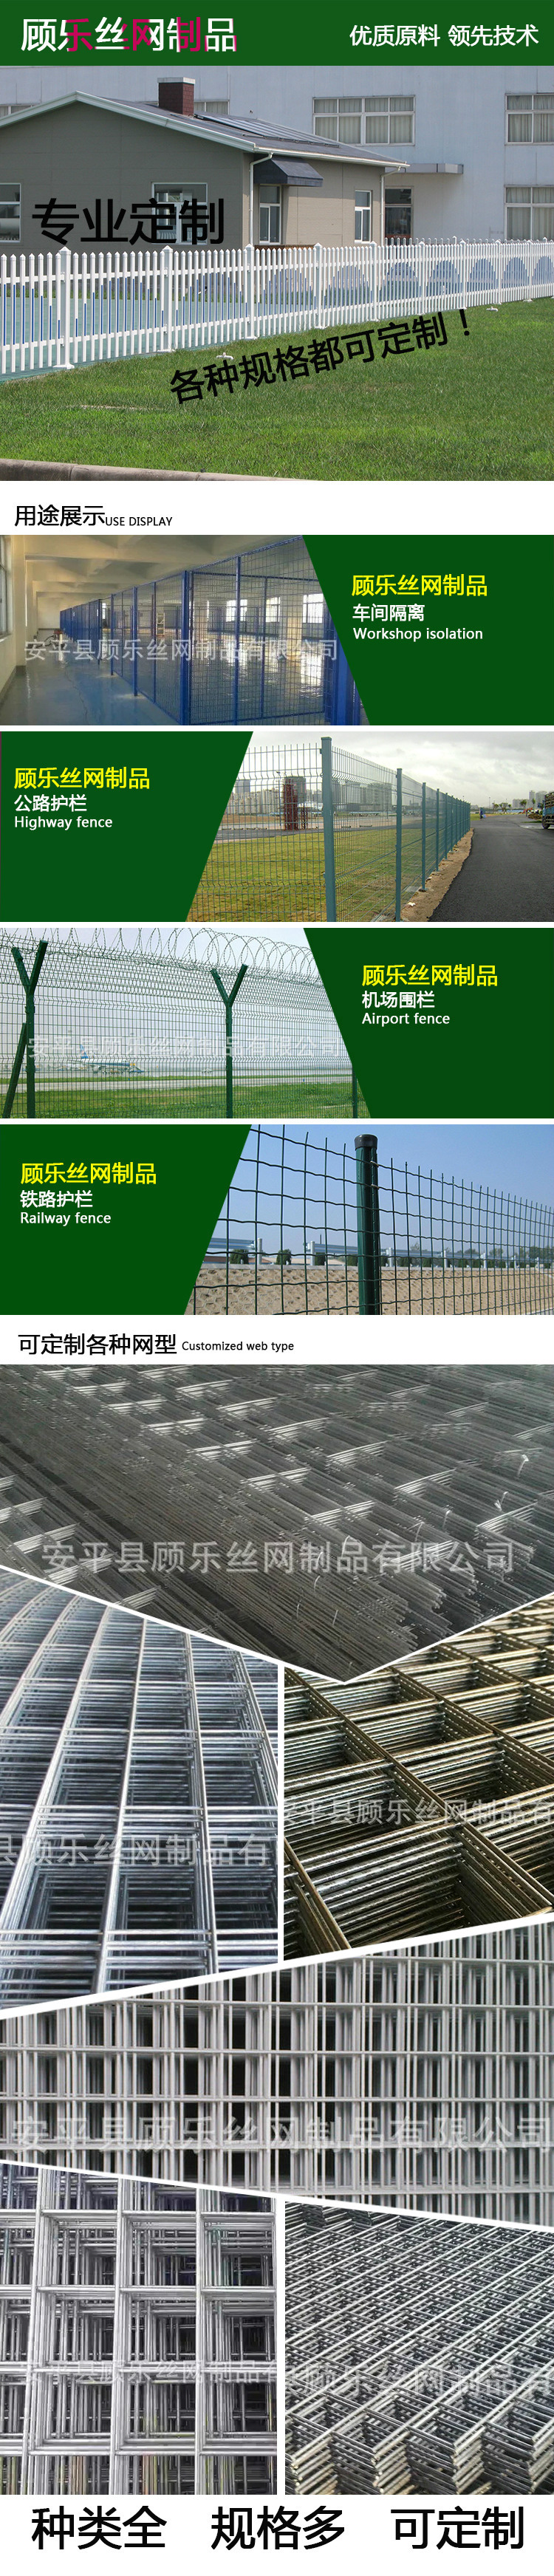 Stainless steel double clip wire fence balcony stairs fence fence fence residential villas of high q